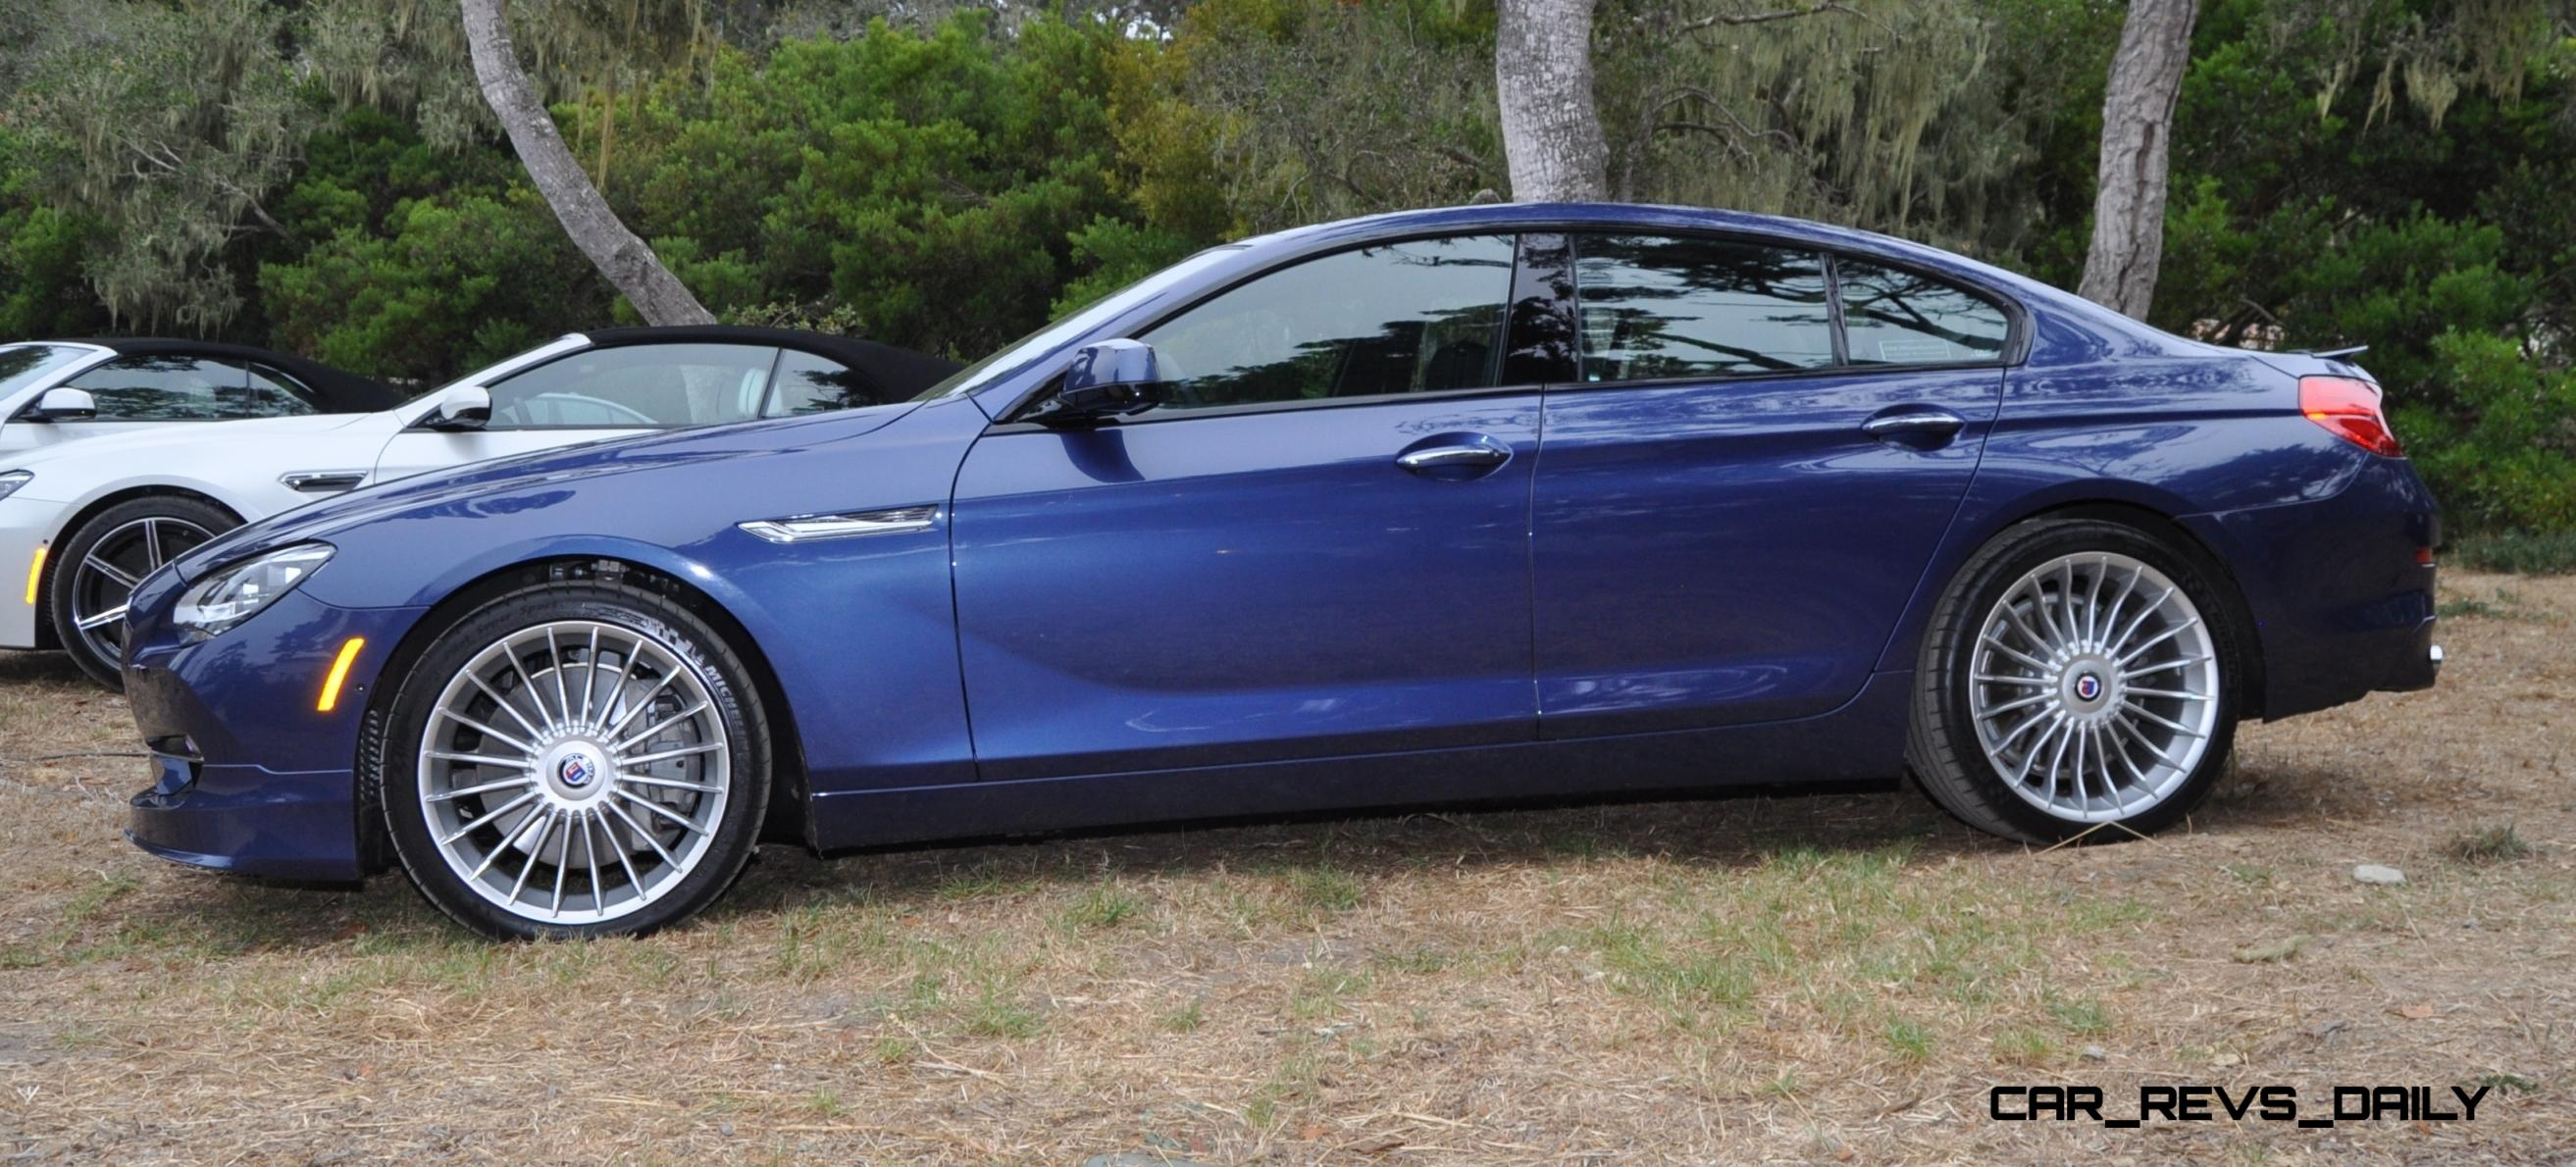 Car Revs Daily 37s 2015 BMW ALPINA B6 XDrive Gran Coupe 6